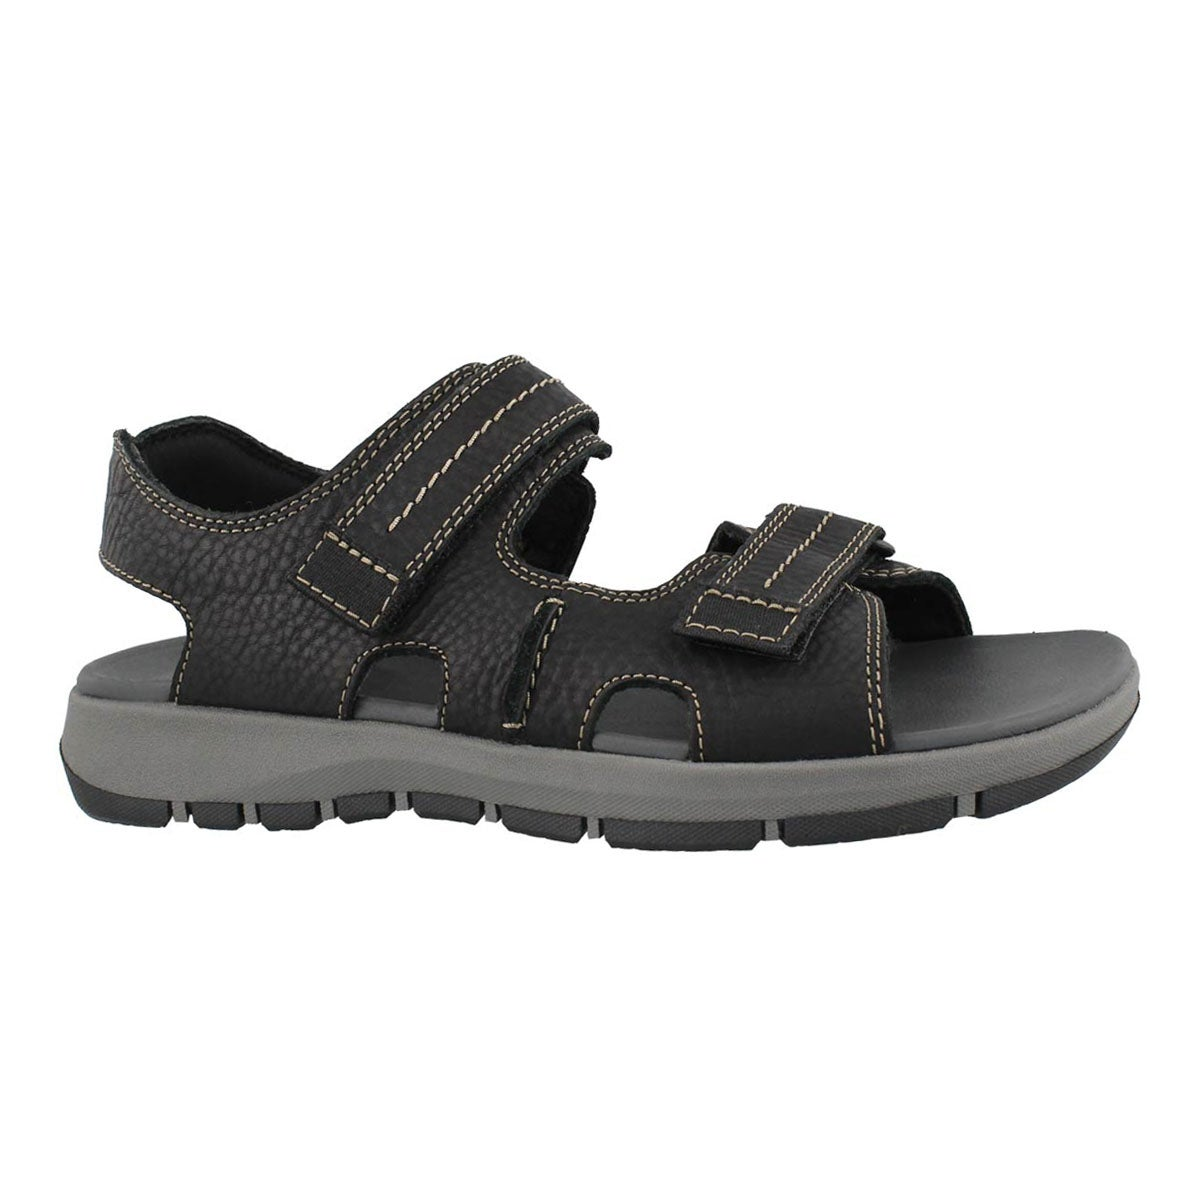 Men's BRIXBY SHORE black casual sandals